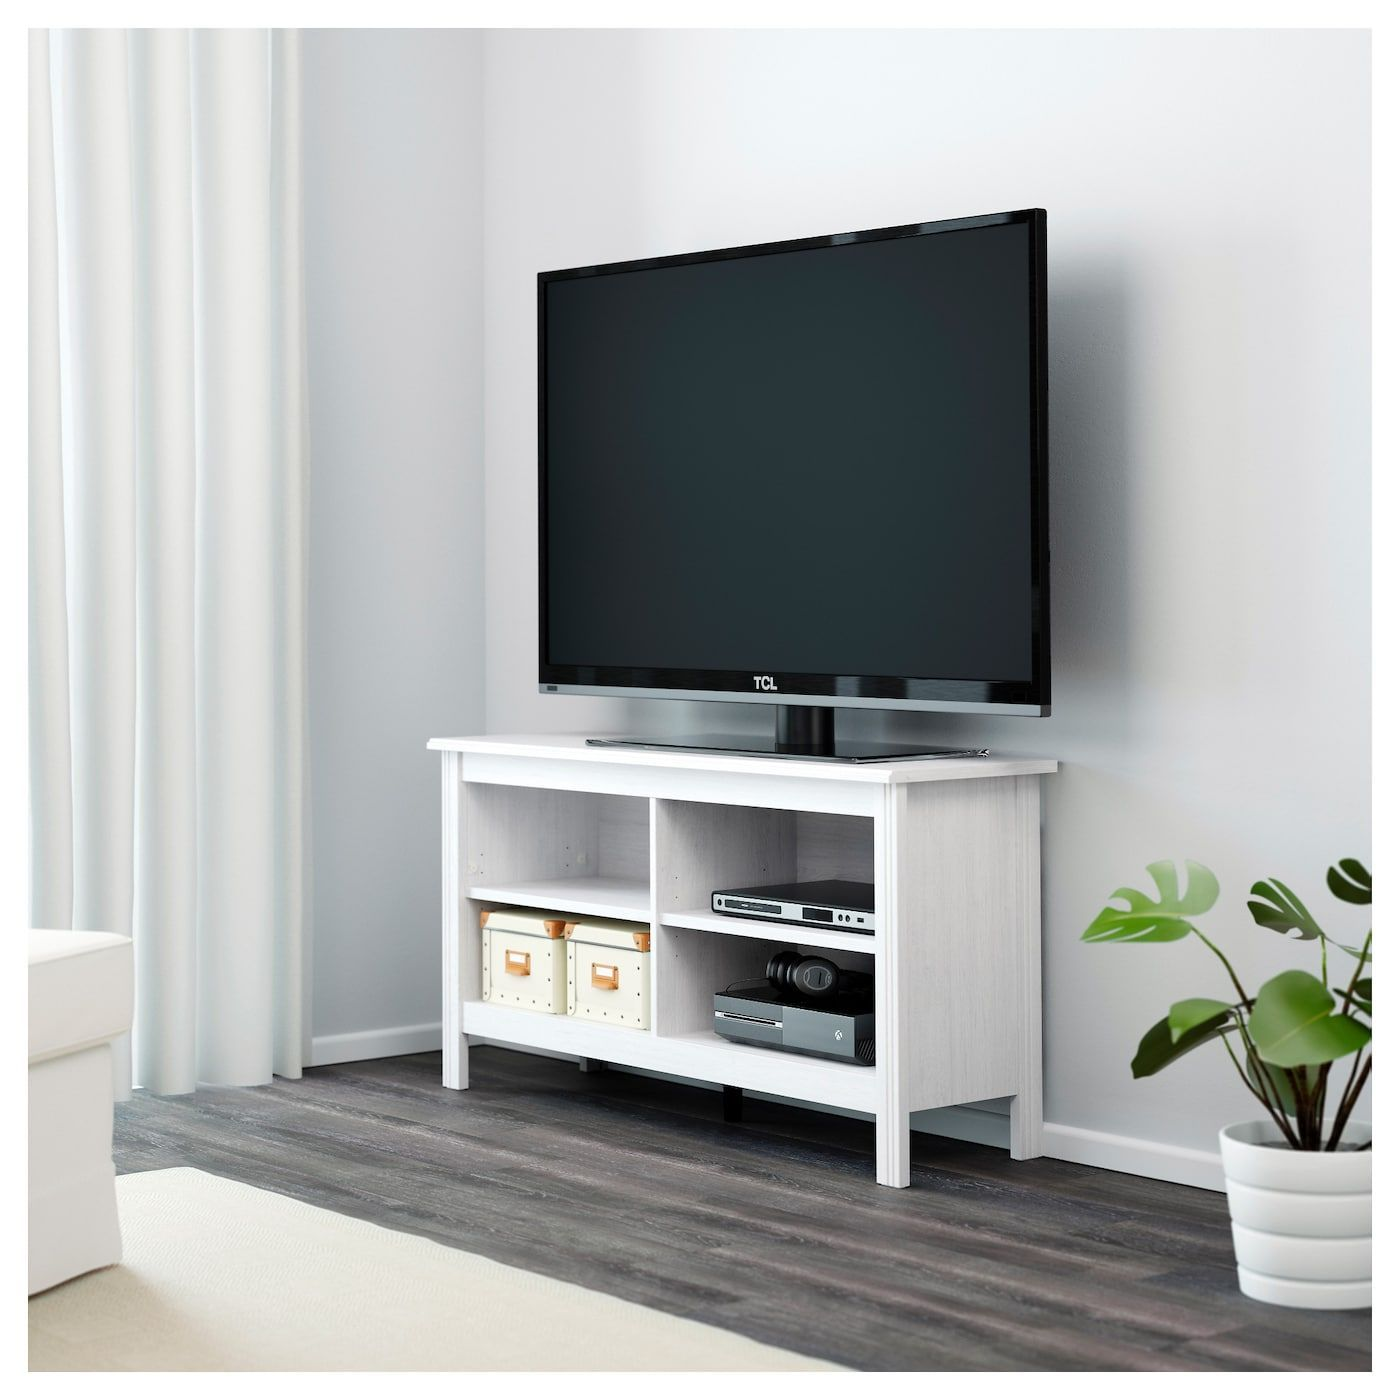 Brusali Tv Bank Weiss Tv Unit Farmhouse Brusali Tv Bank Weiss Ikea In 2020 Bedroom Tv Stand White Tv Stands Tv Bench